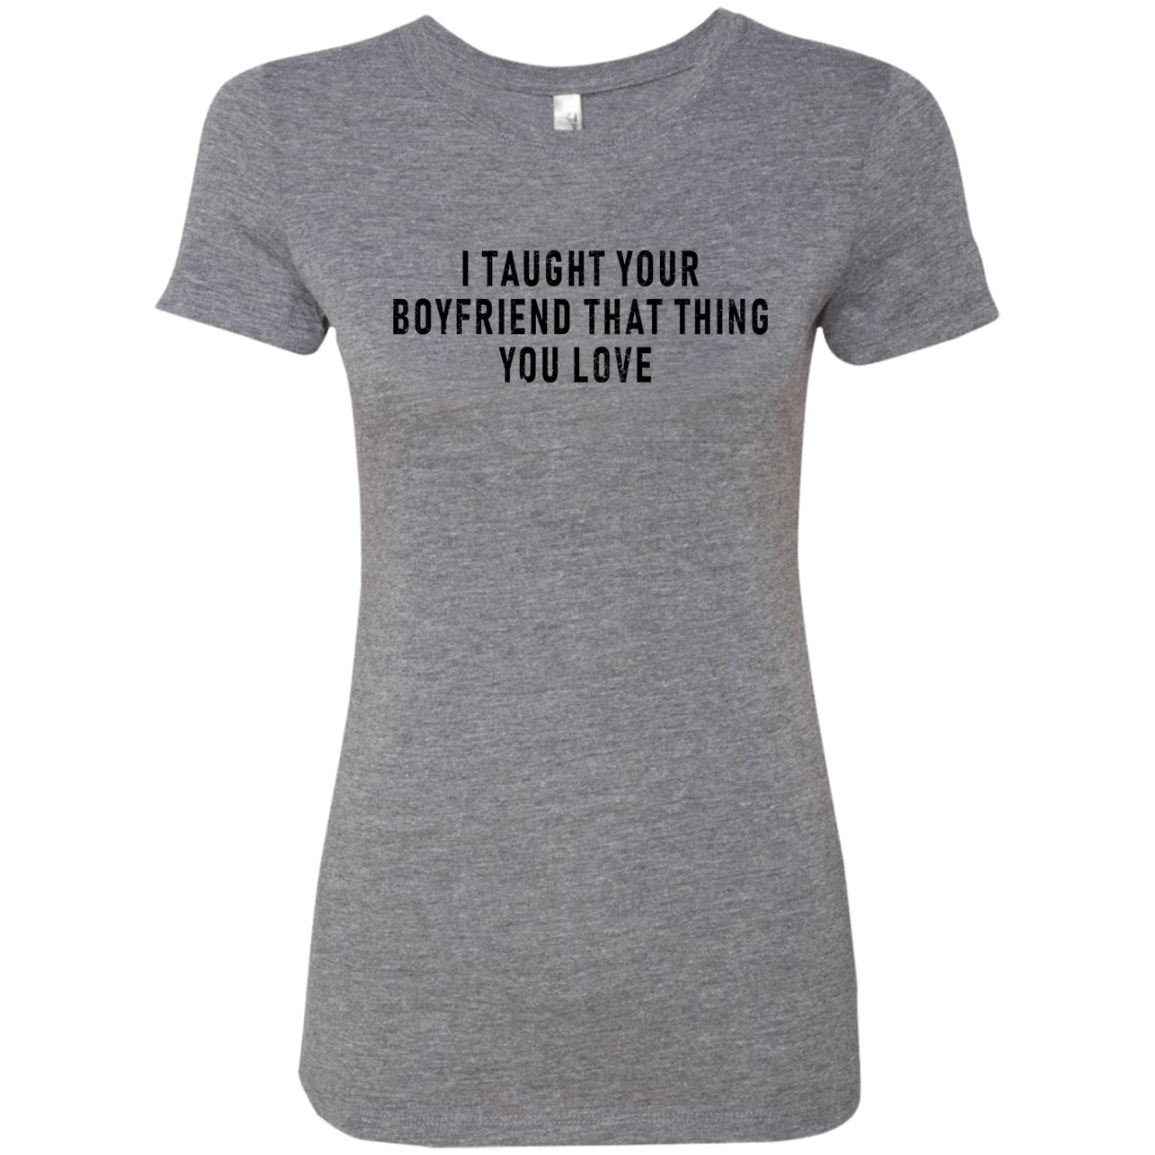 I Taught Your Boyfrind That Thing You Love Women's Classic Tee